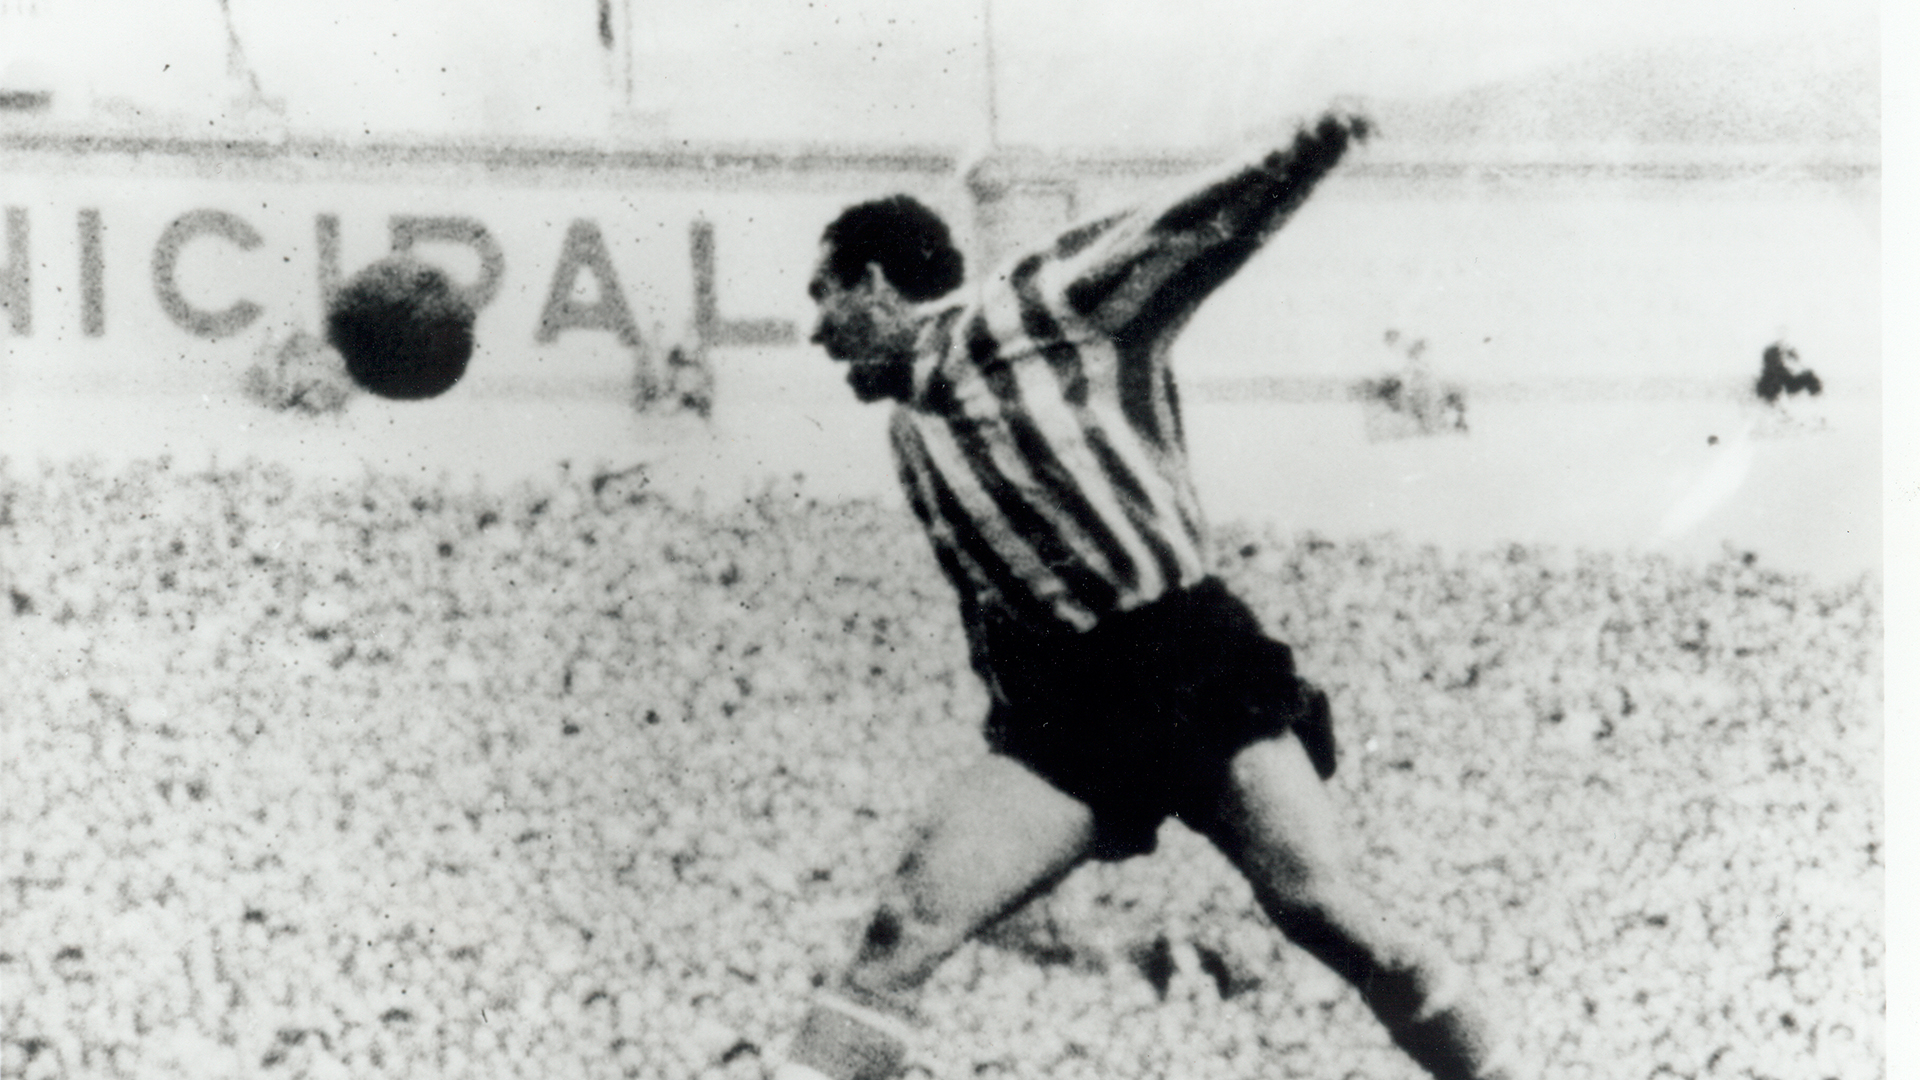 Telmo Zarra: 100 years a legend